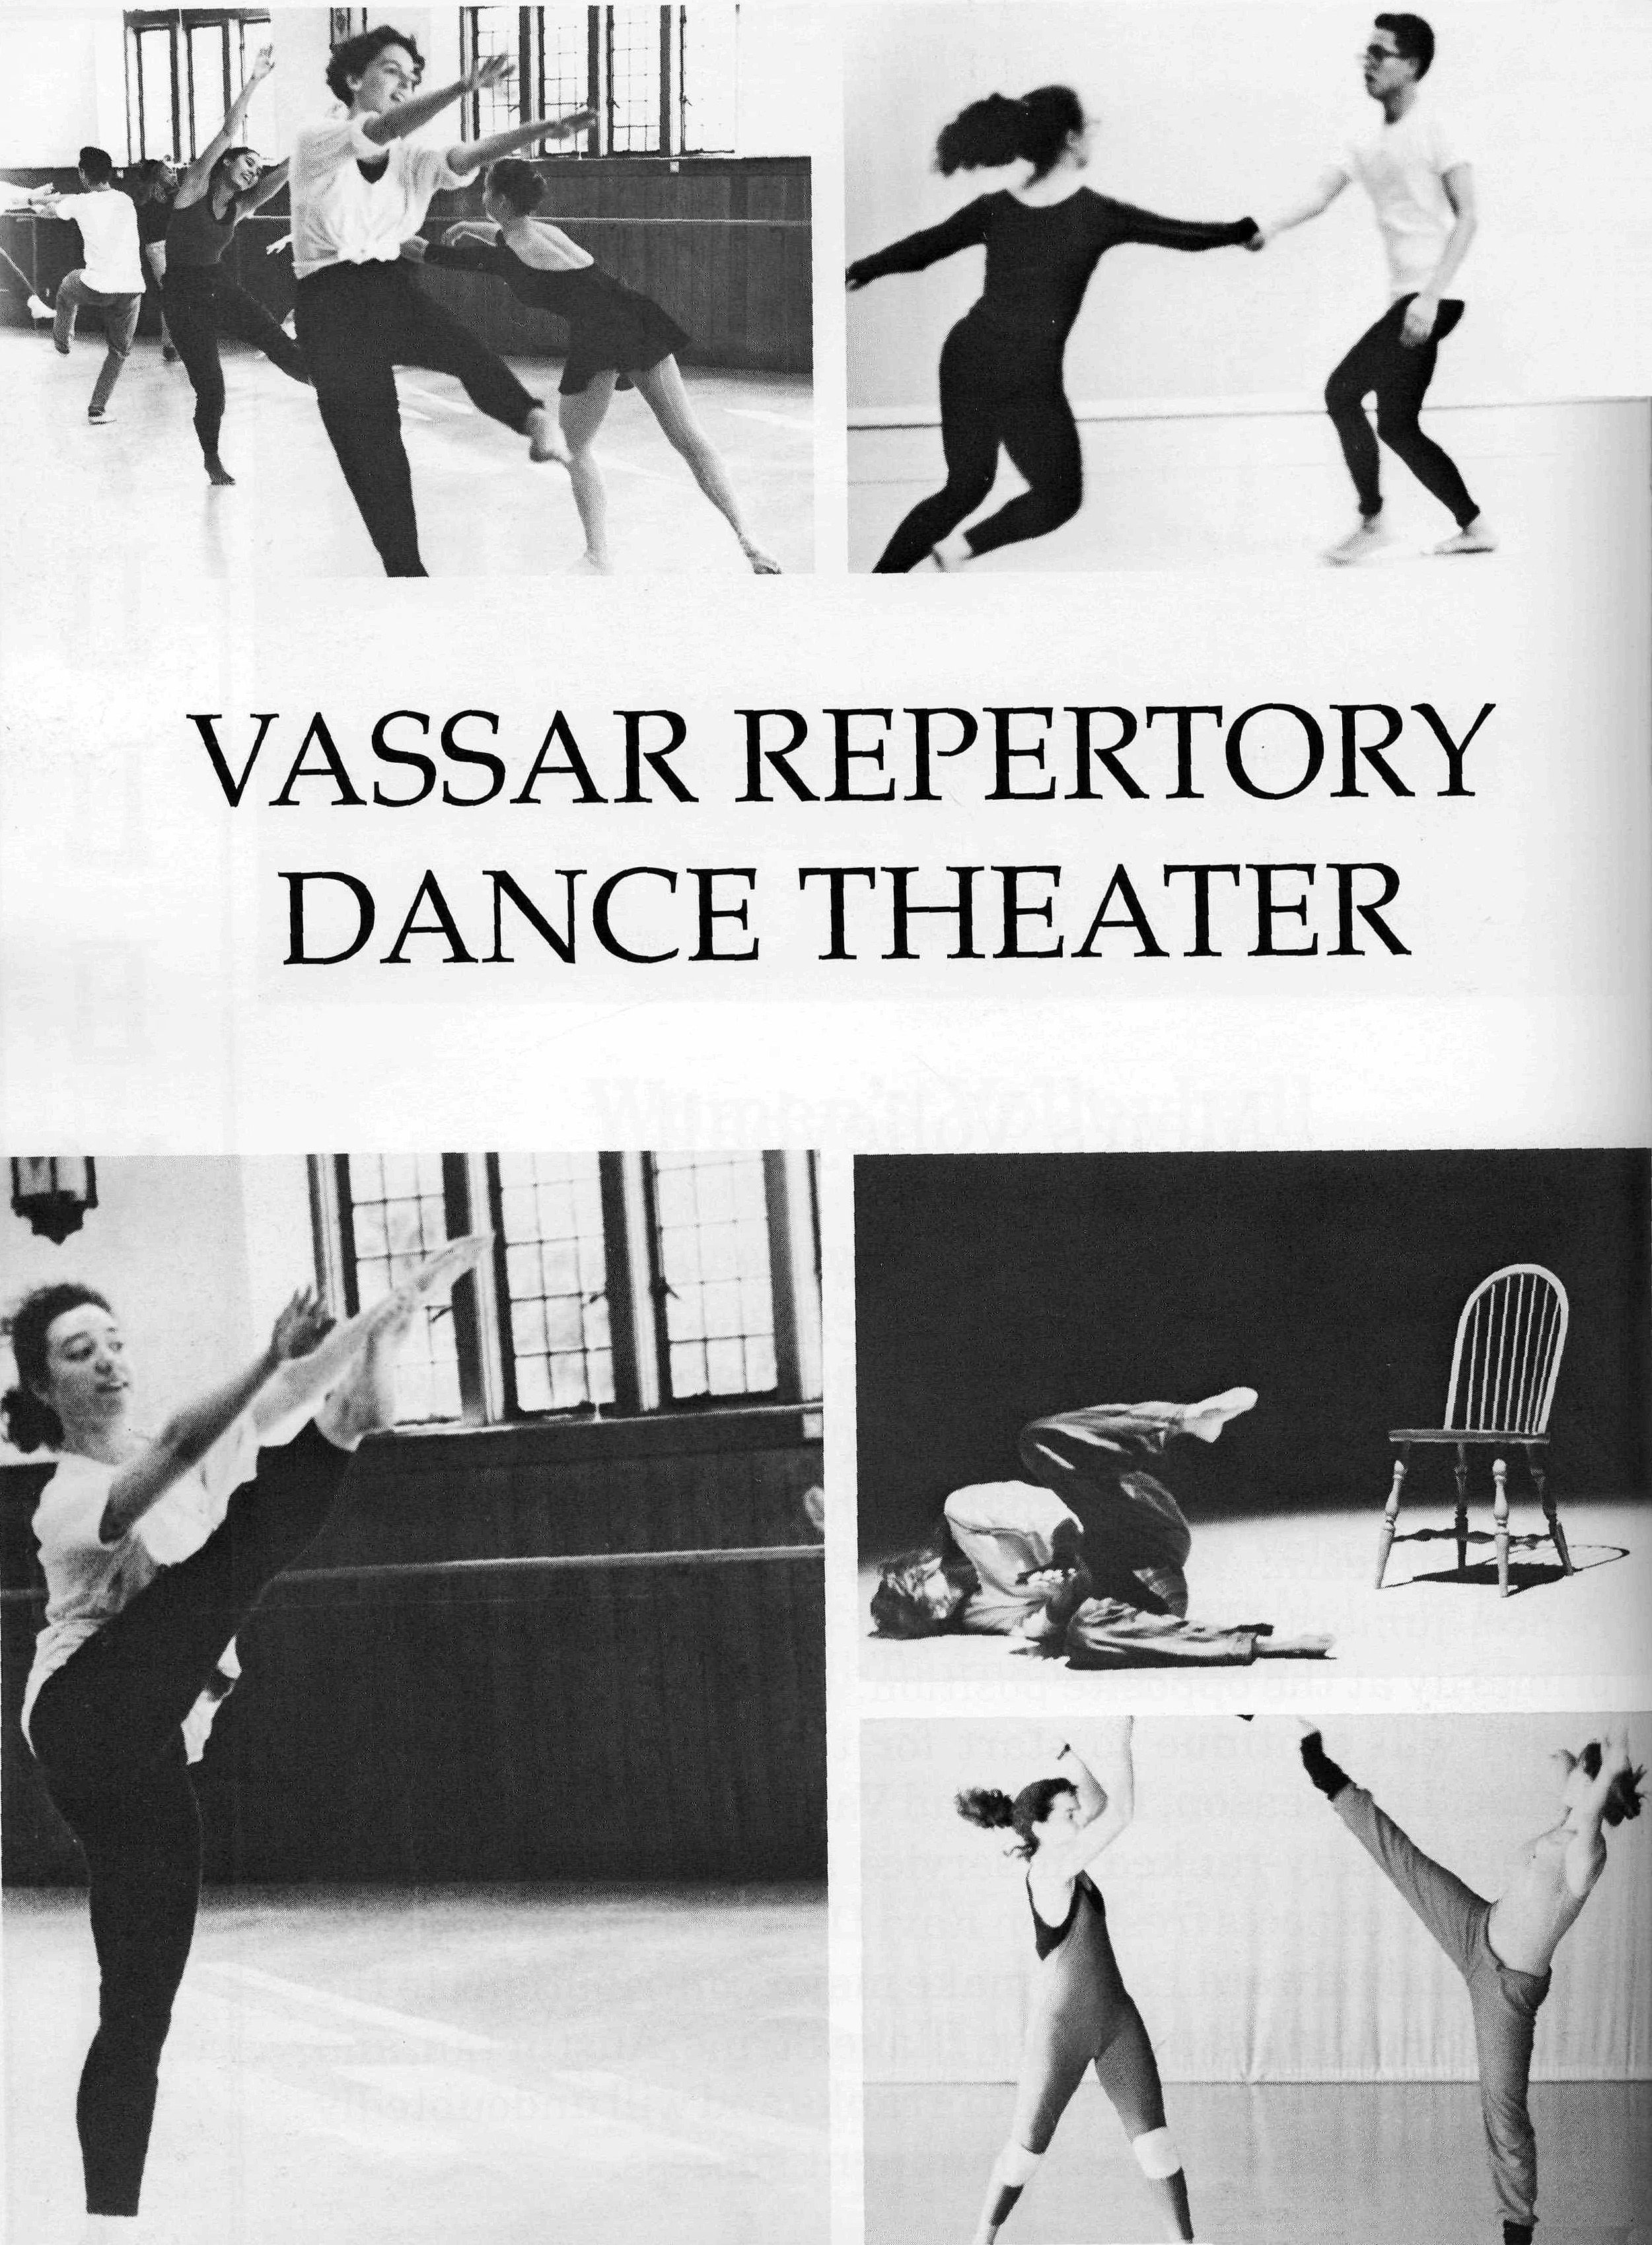 By 1993, the Vassar Repertory Dance Theatre was part of Vassar's curriculum